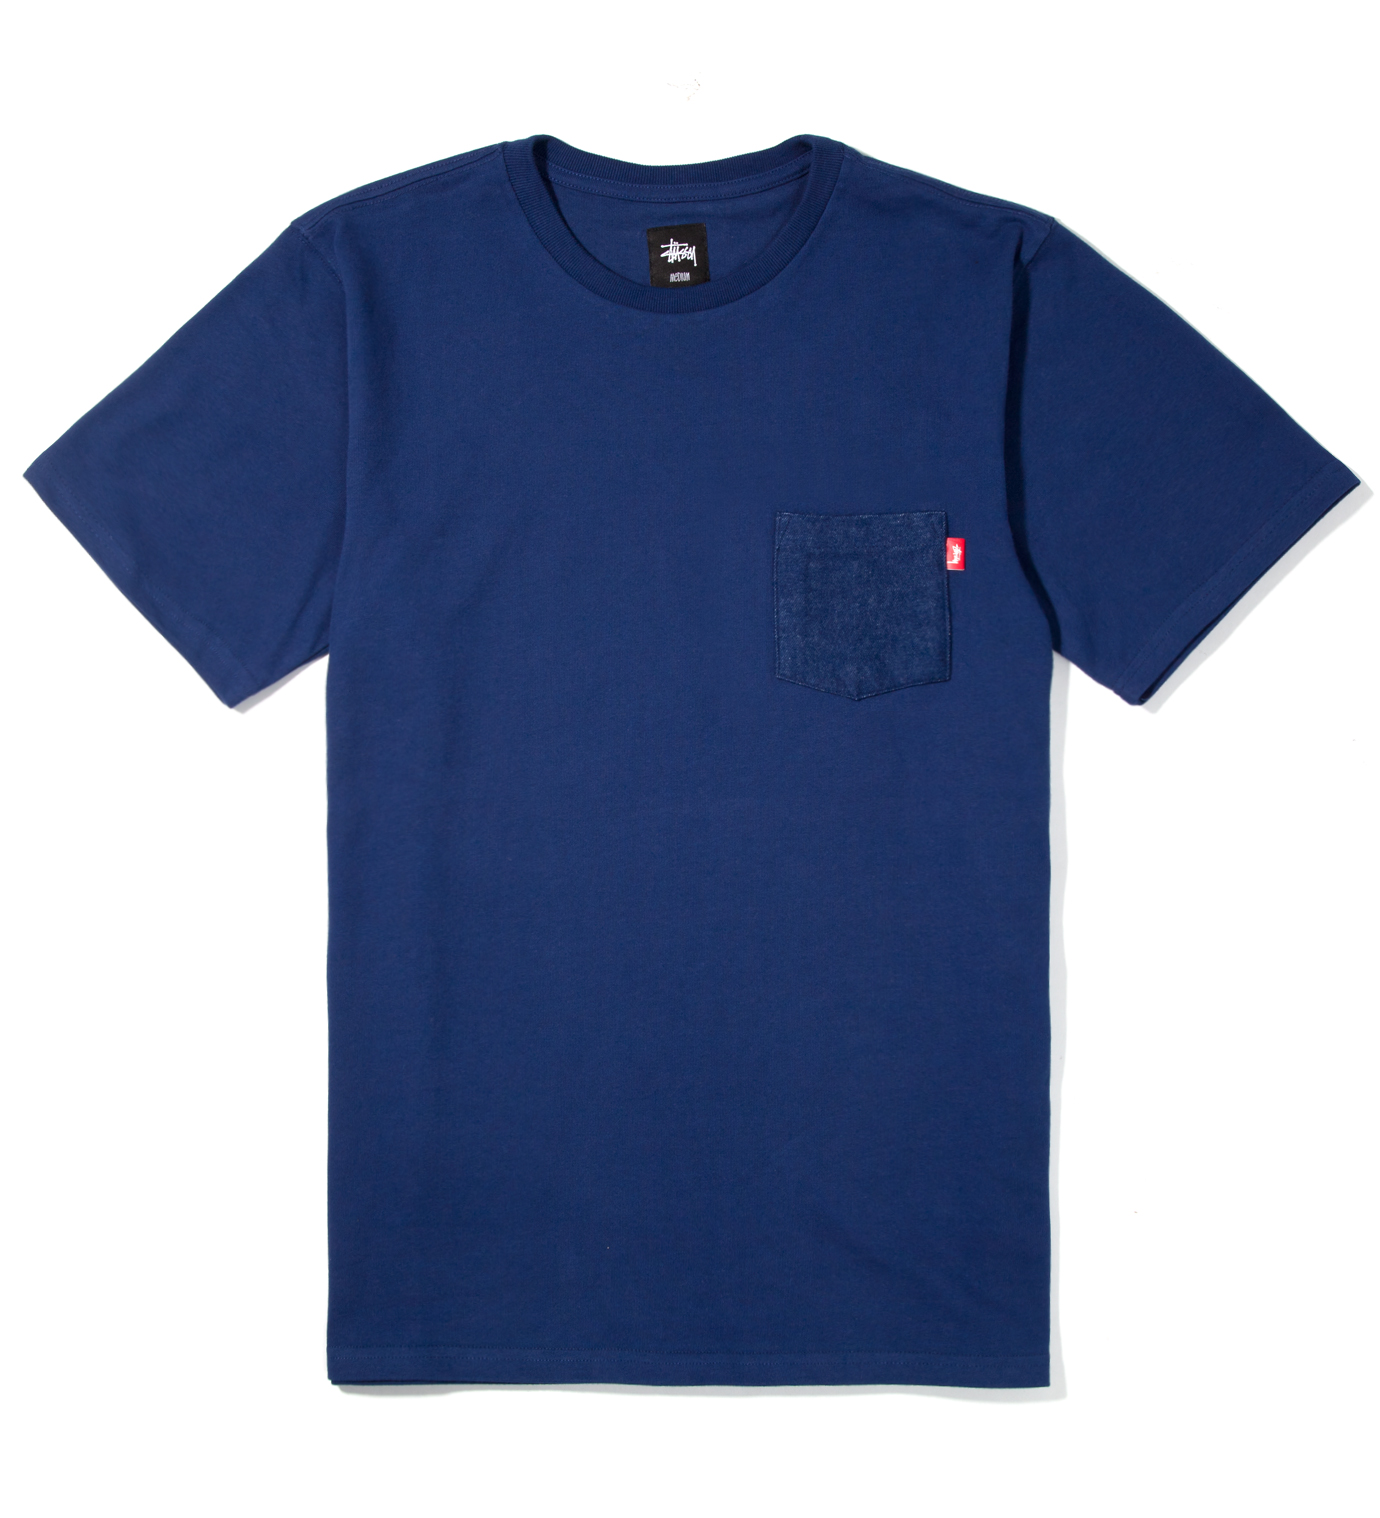 Stussy Navy Flannel Pocket T-Shirt